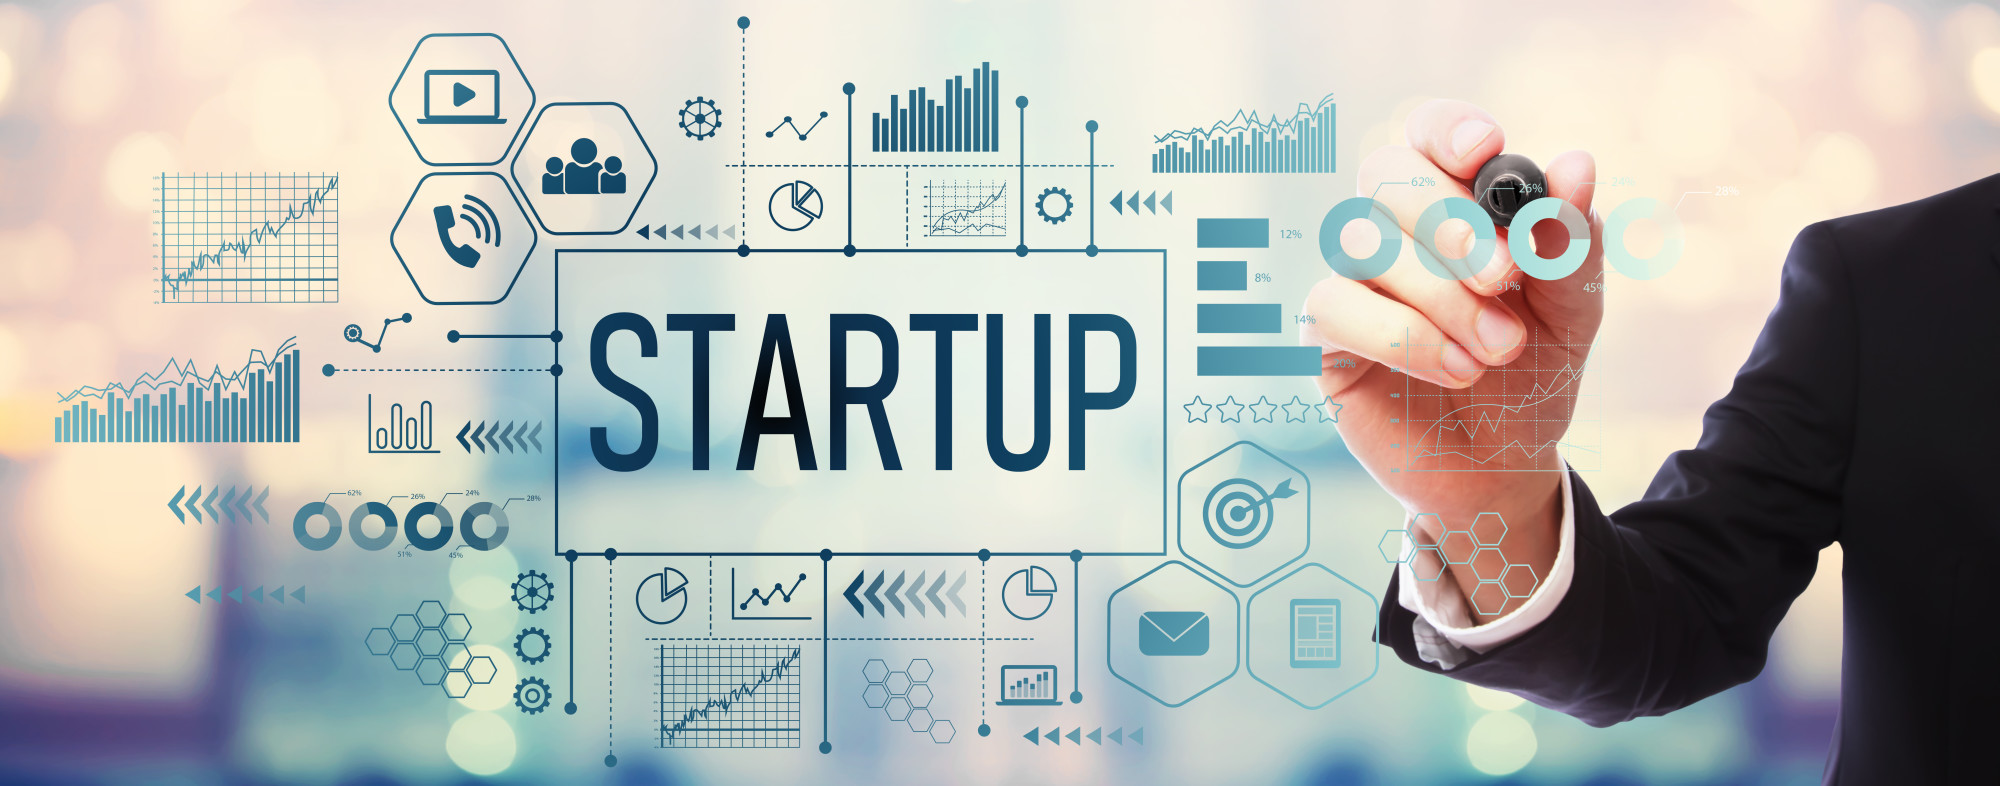 7 Tips for Startups on Marketing with Social Media